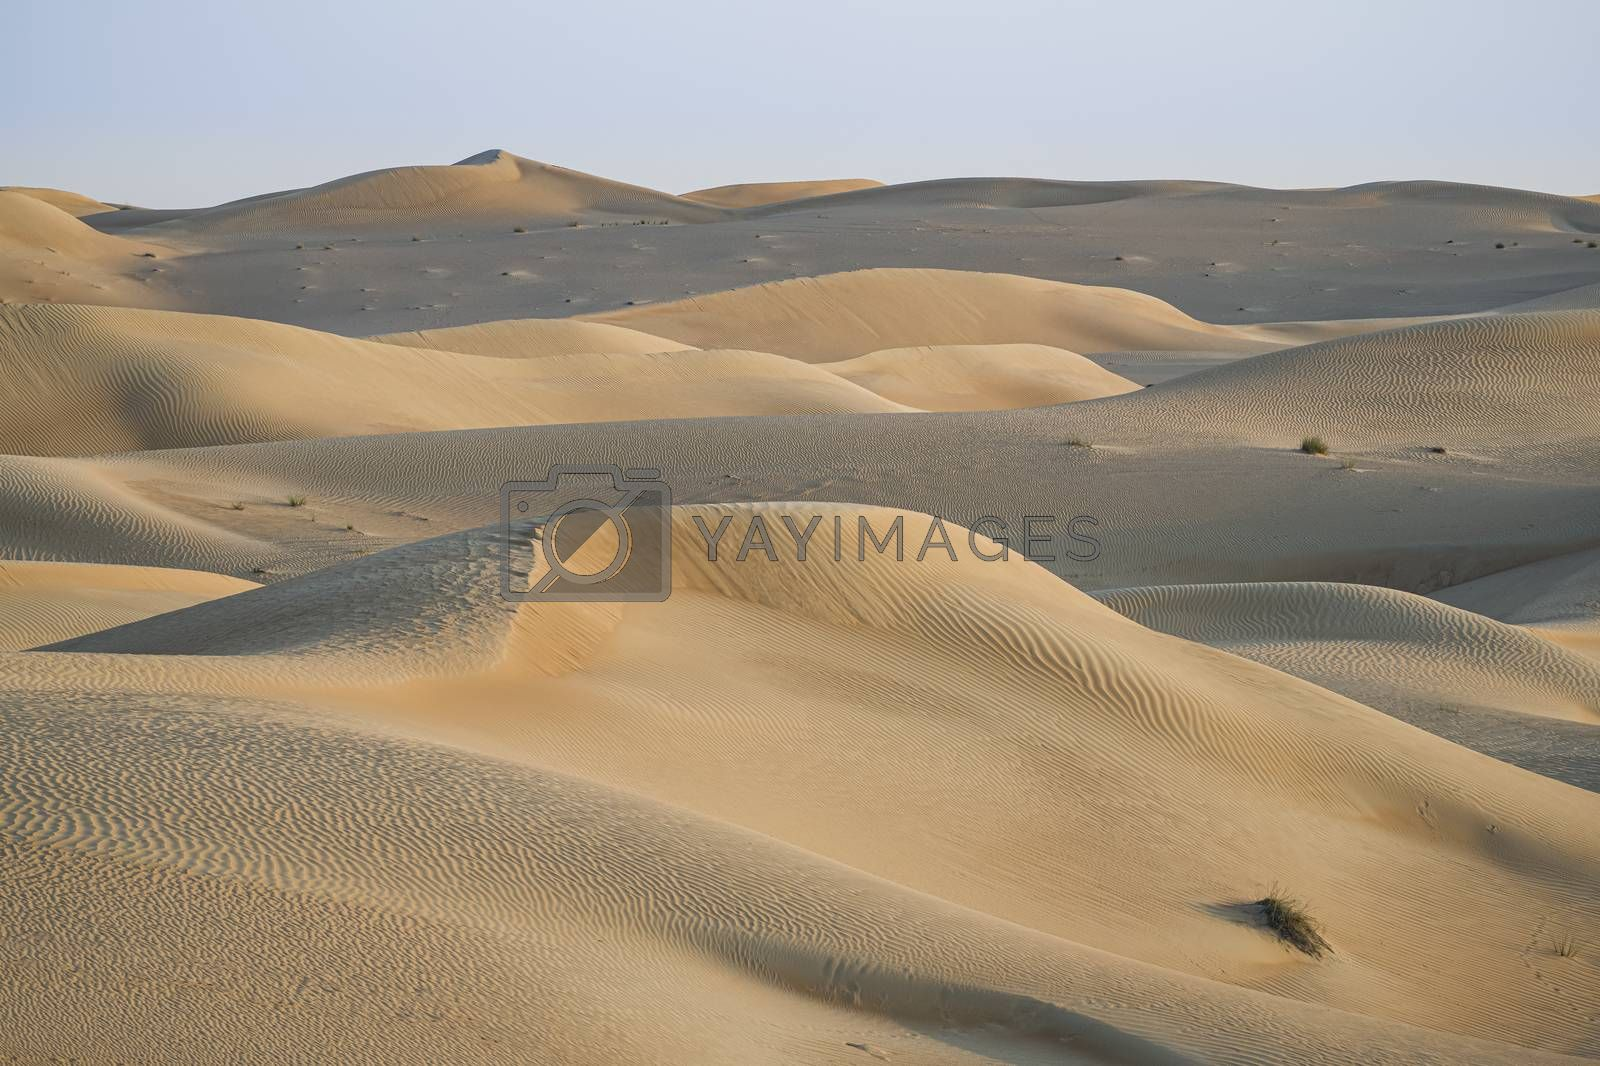 Desert lansdcape with yellow, red sand dunes